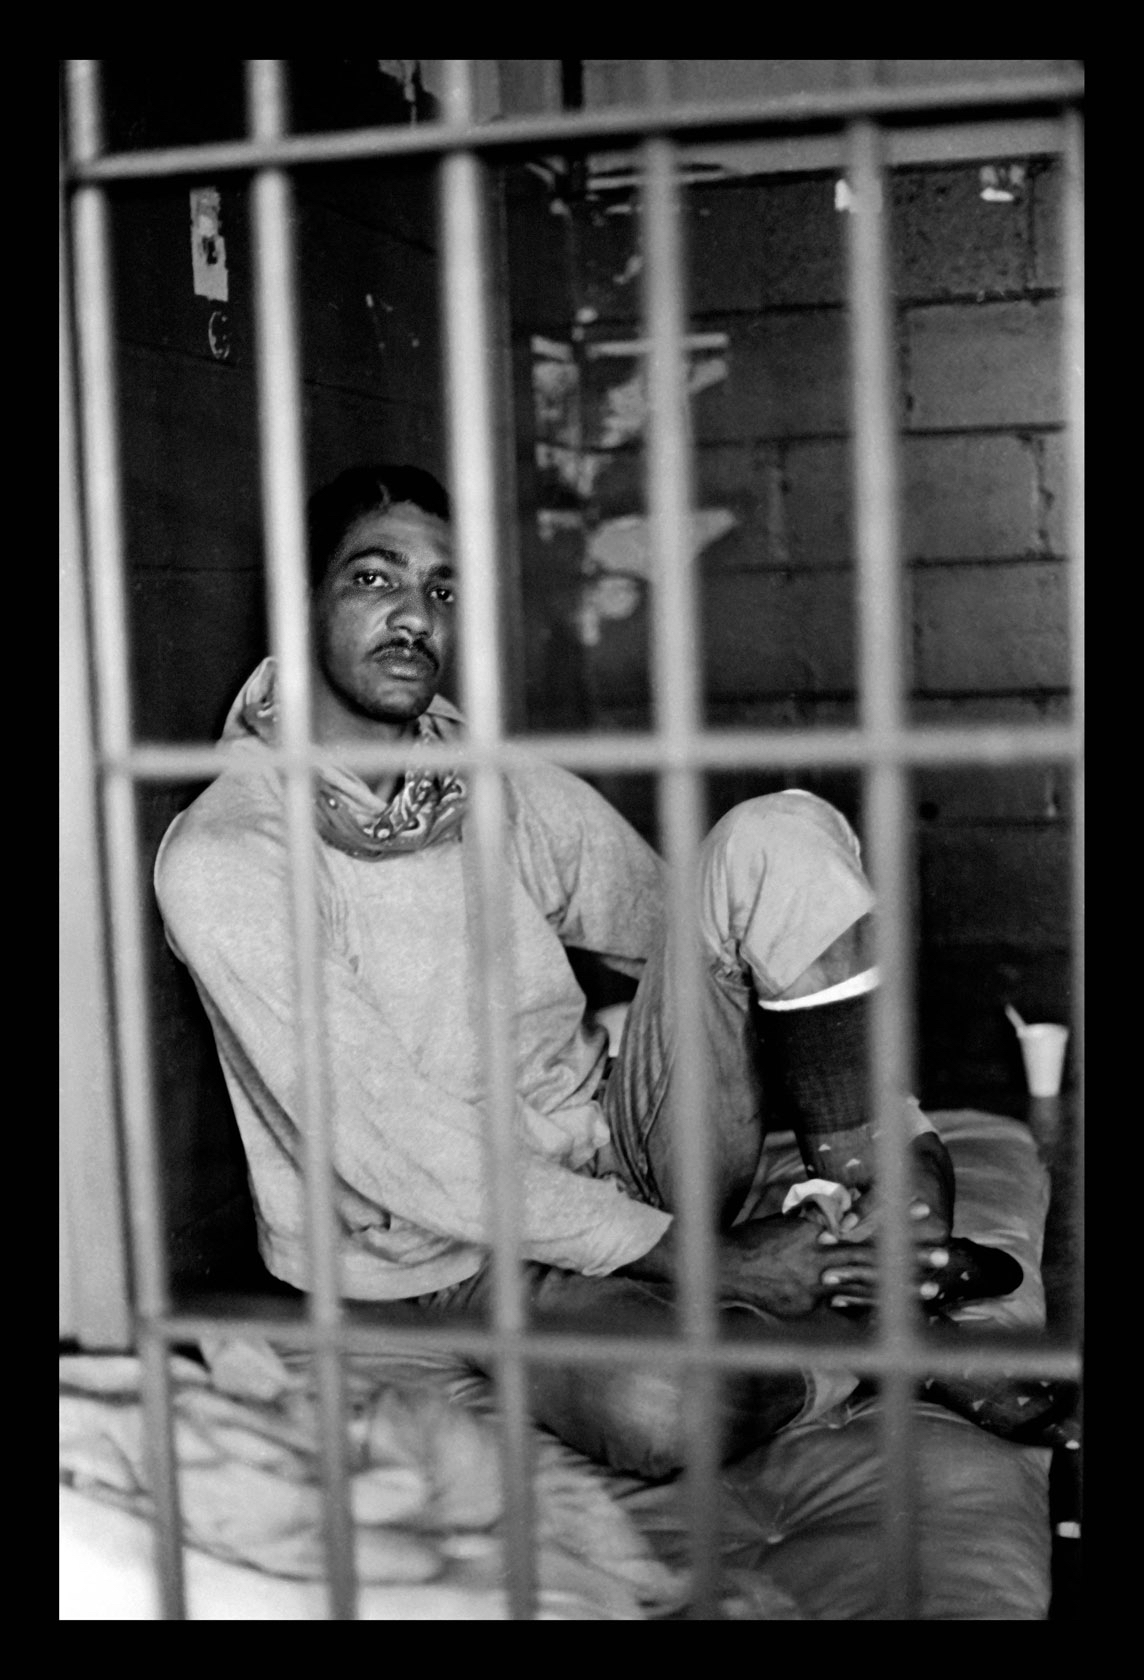 Keith Calhoun. GLENN DEMOURELLE SERVED 27 YEARS IN ANGOLA STATE PRISON, 1980.